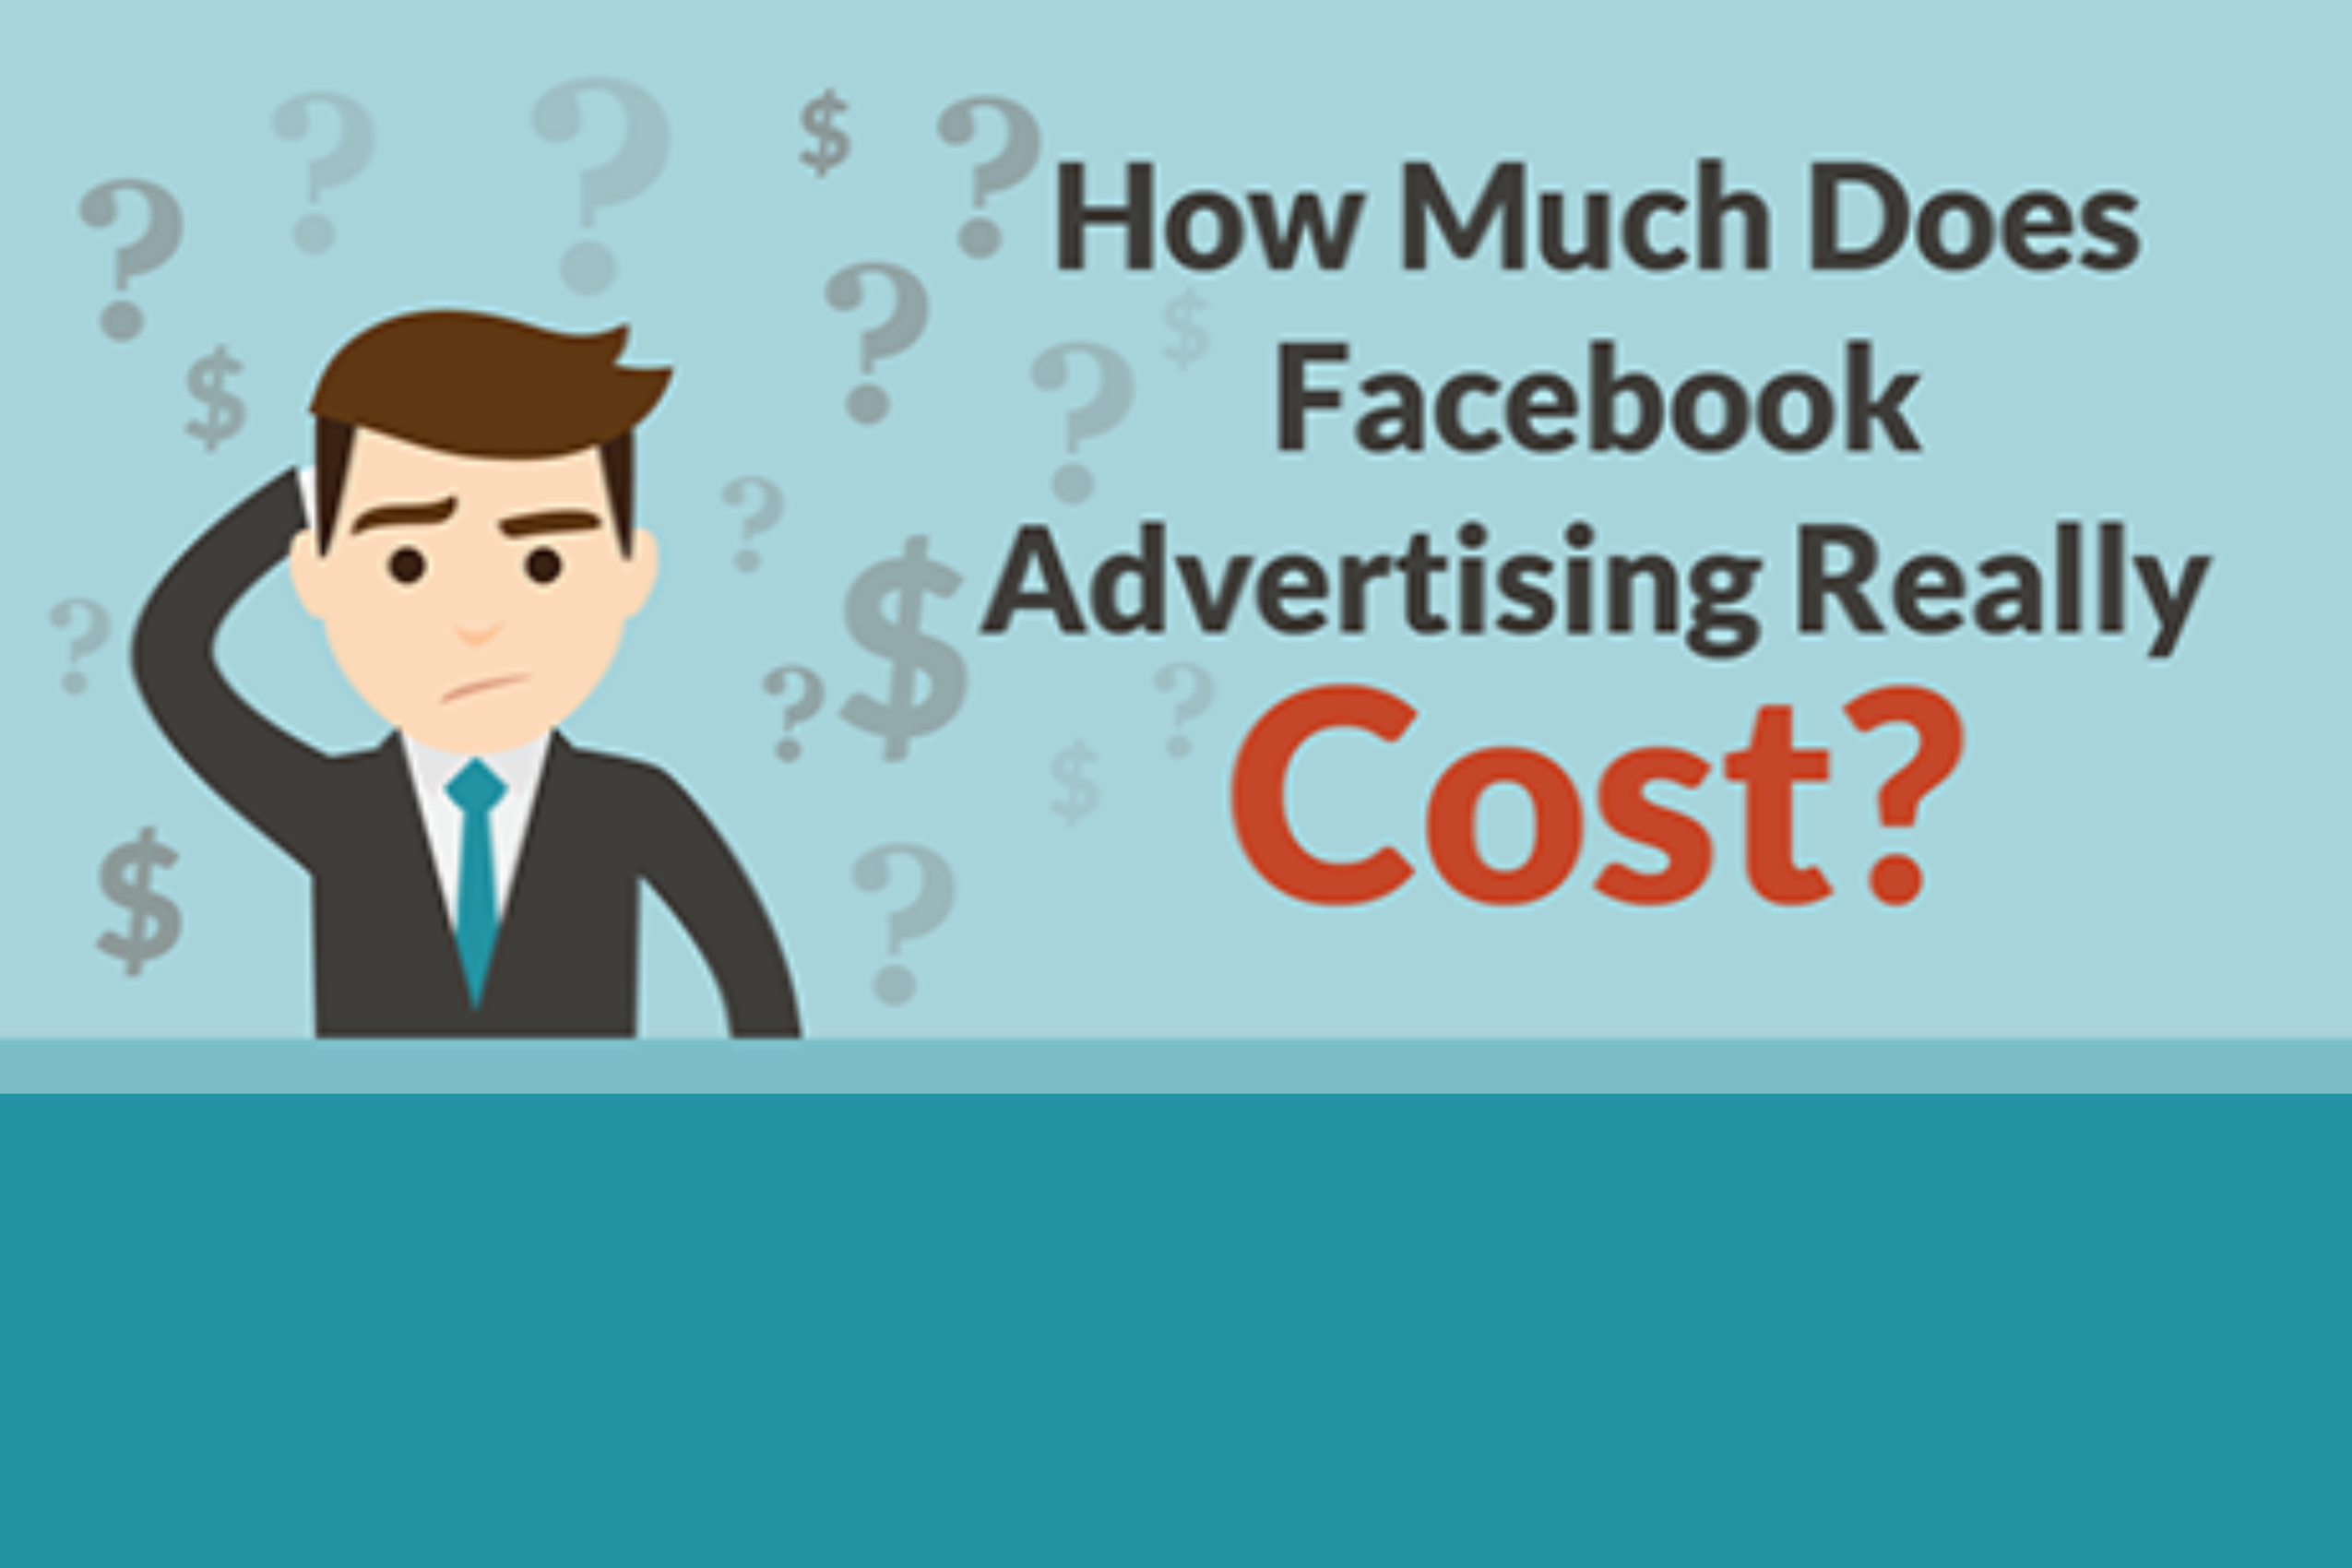 How Much Does Facebook Advertising Really Cost_ (infographic)